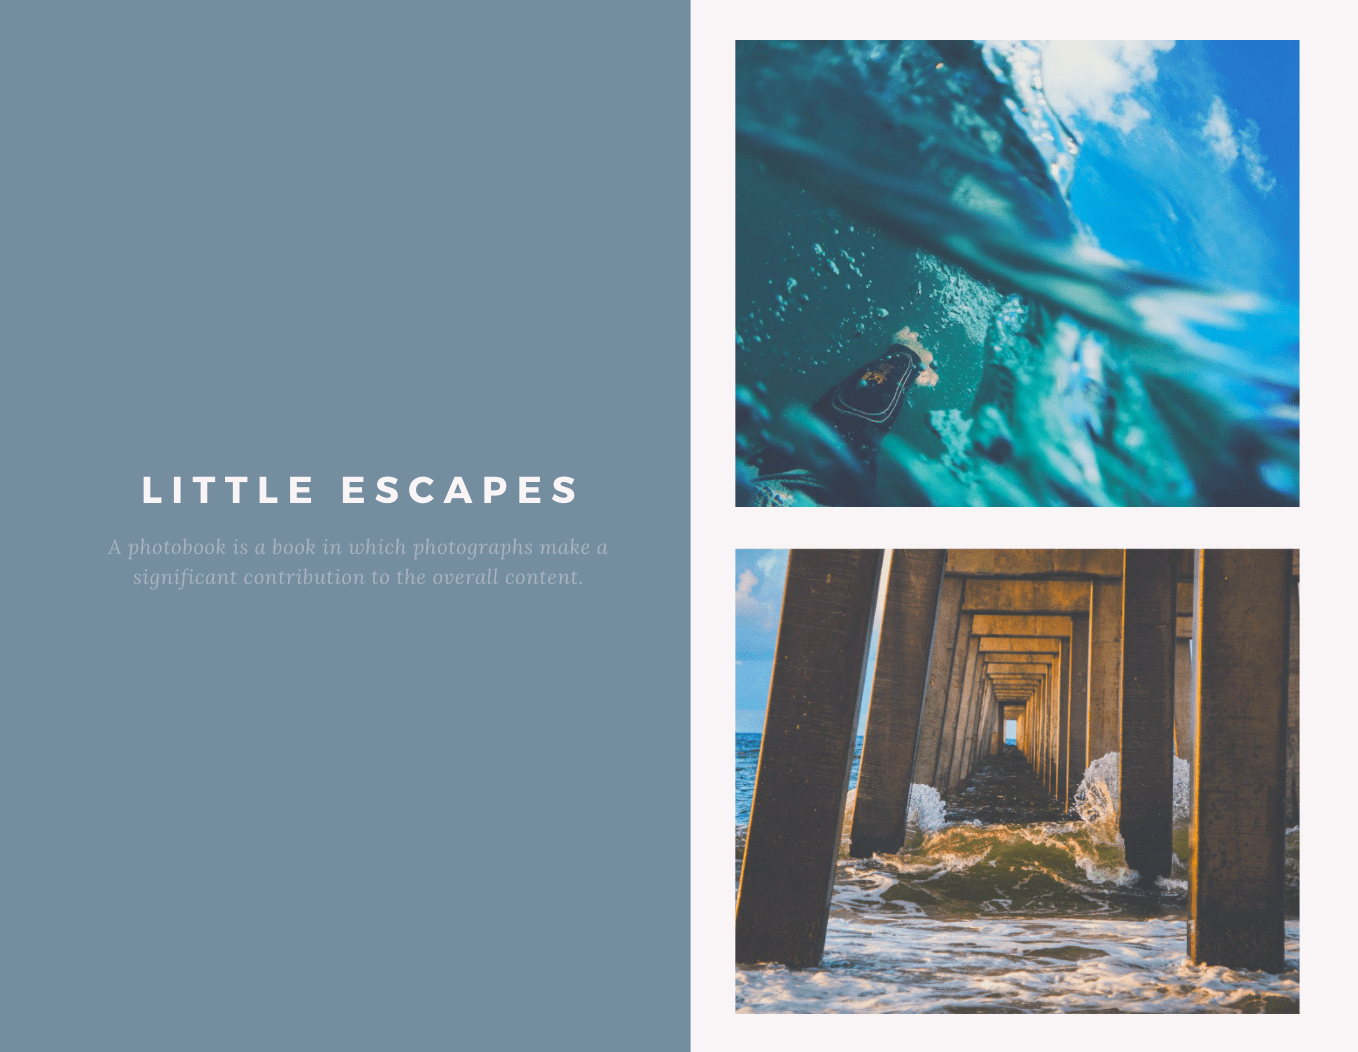 Little Escapes Photo Book template from Canva